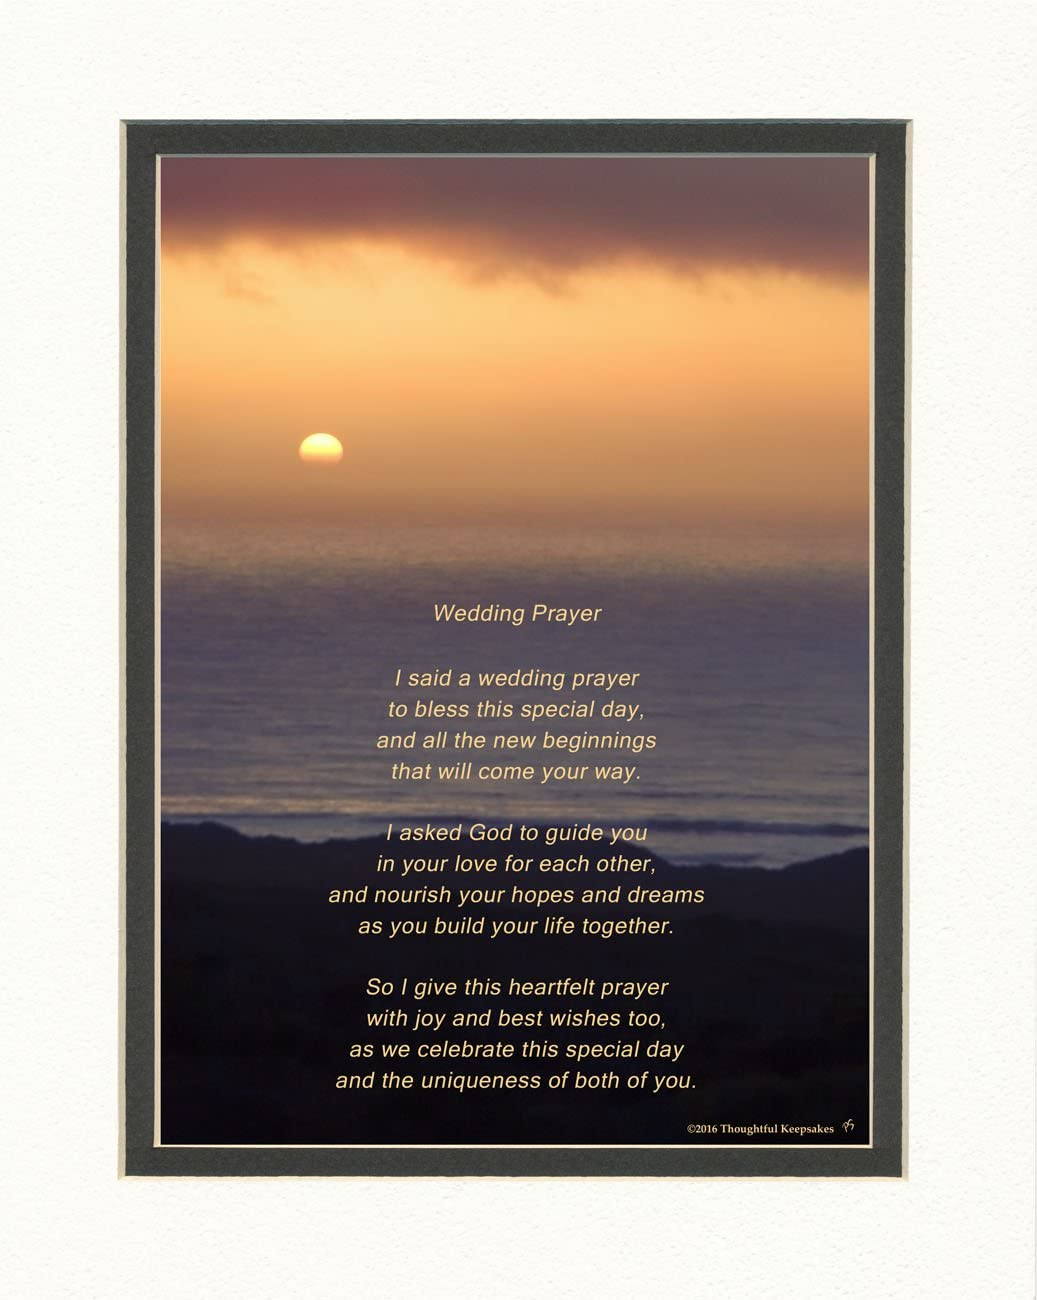 Ocean Sunset Photo Special Wedding Gift for The Bride and Groom 8x10 Double Matted Wedding Gift for The Couple with Wedding Prayer Poem Unique Keepsake Gift for Wedding Couples